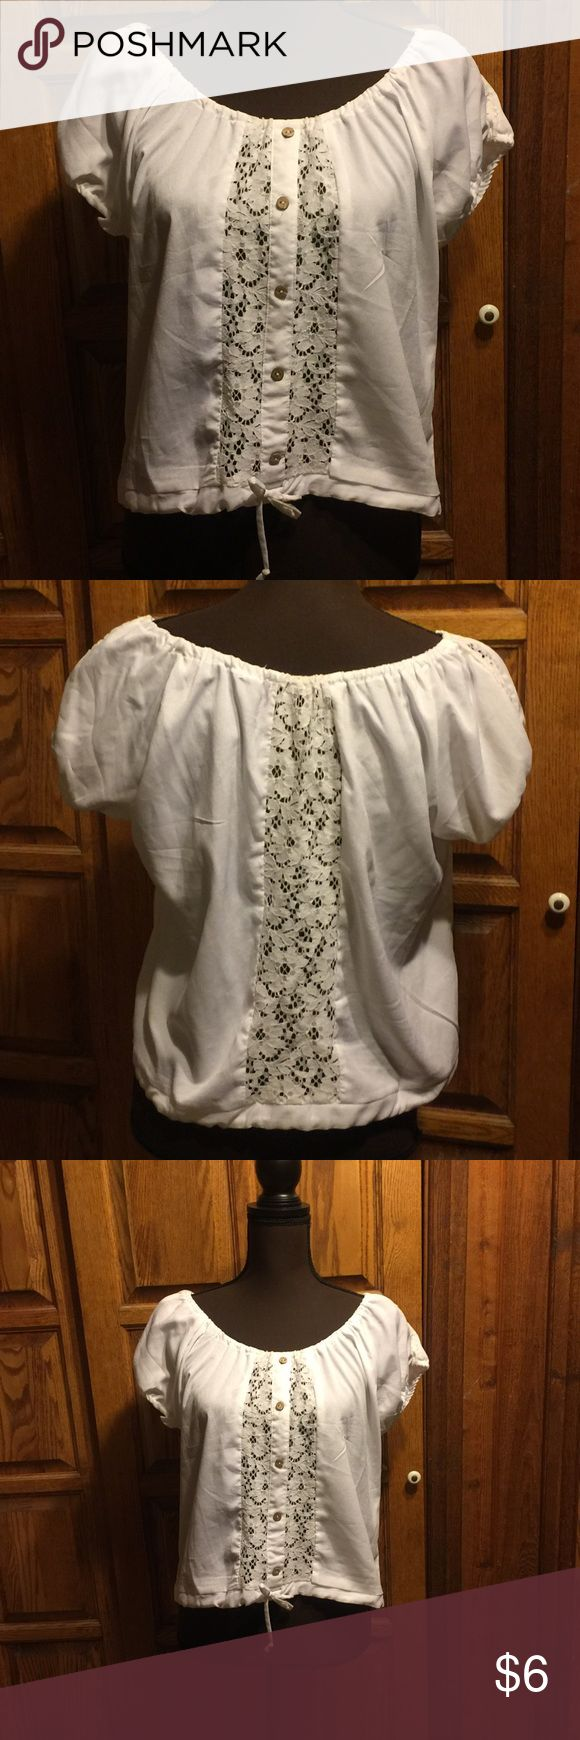 Charlotte Russe Peasant Top Cute peasant top by Charlotte Russe. Gently used and in good condition. 60/40 cotton poly blend. Smoke free home. No trades. Charlotte Russe Tops Blouses